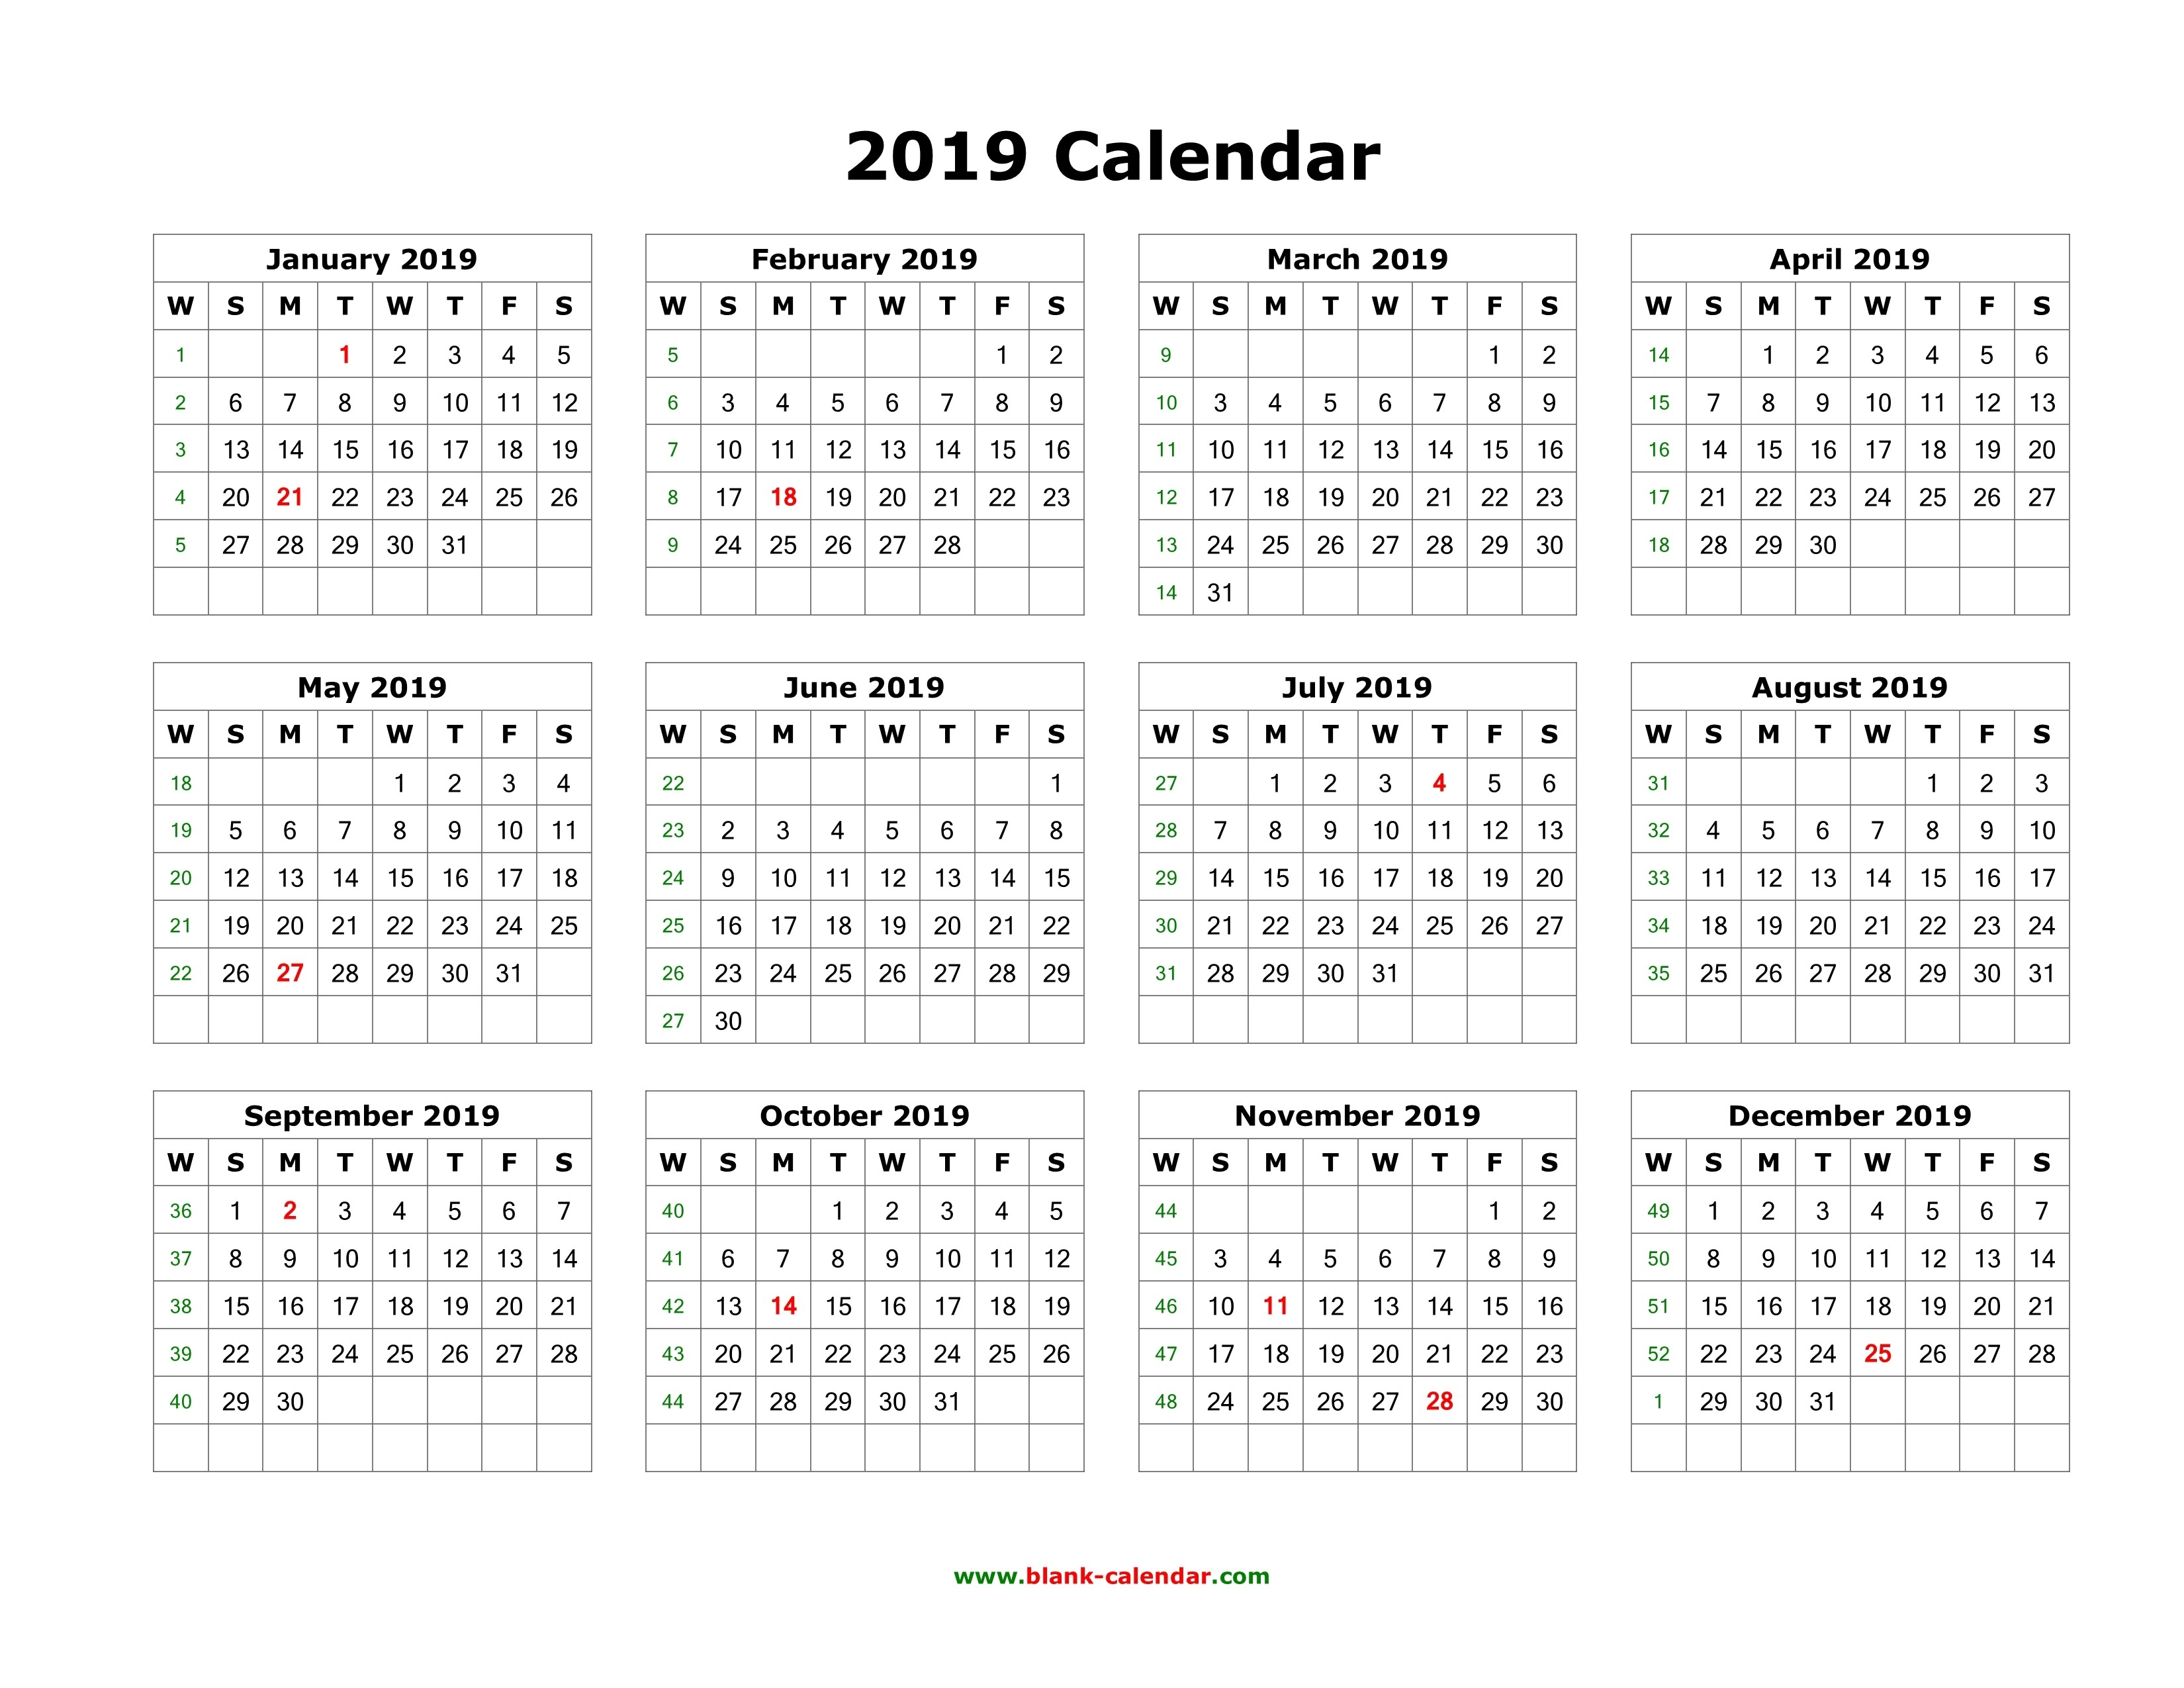 Download Blank Calendar 2019 (12 Months On One Page, Horizontal)-Blank Calendar 4 Months One Page